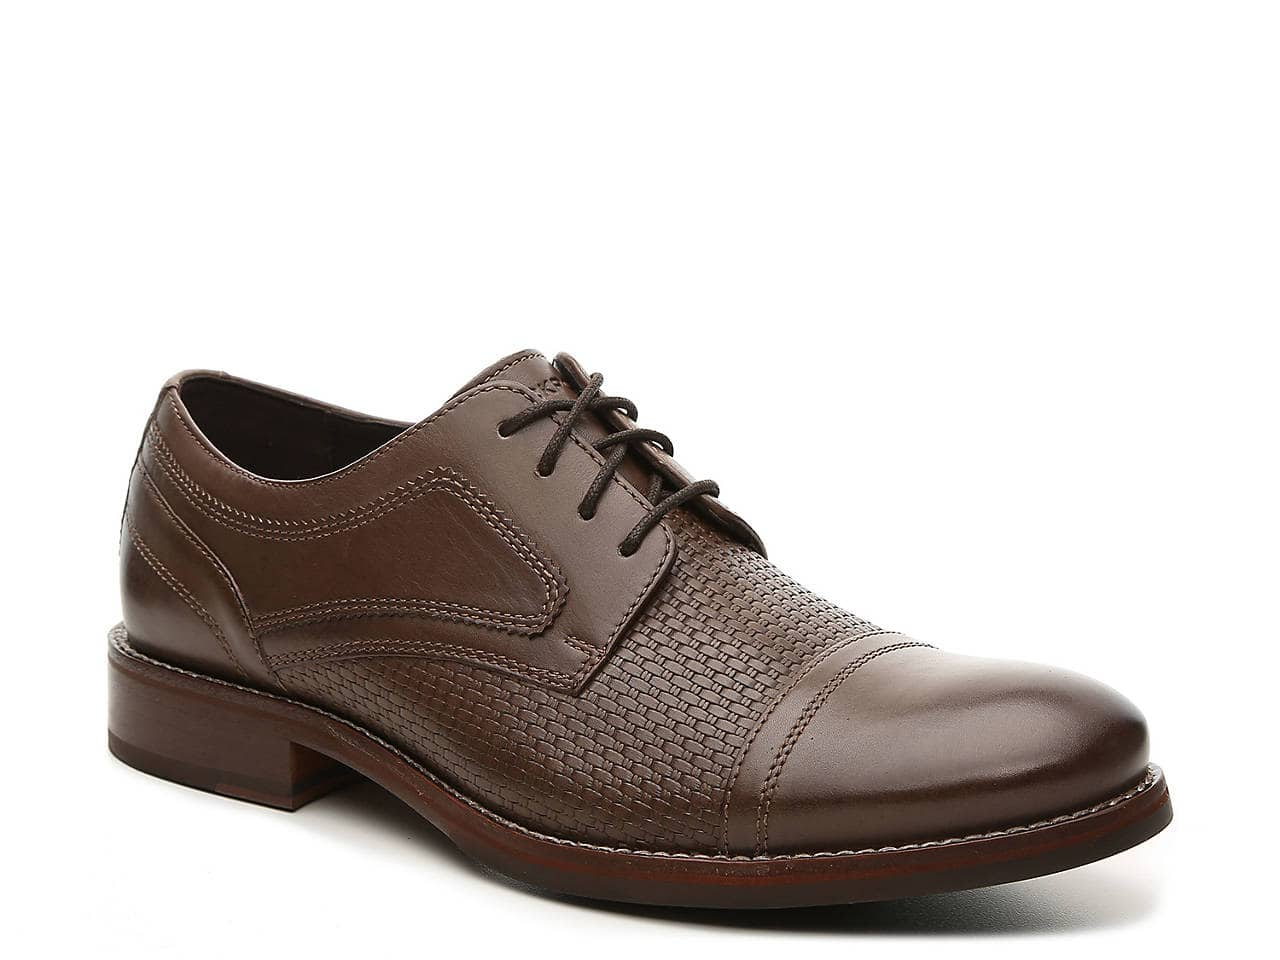 Rockport Men's Leather Oxford Shoes (various) $30, Men's Waterproof Storm Surge Boot $33, Men's SL2 Slip-On (wide) $30, Women's Ruby Sandal $21, More + free shipping